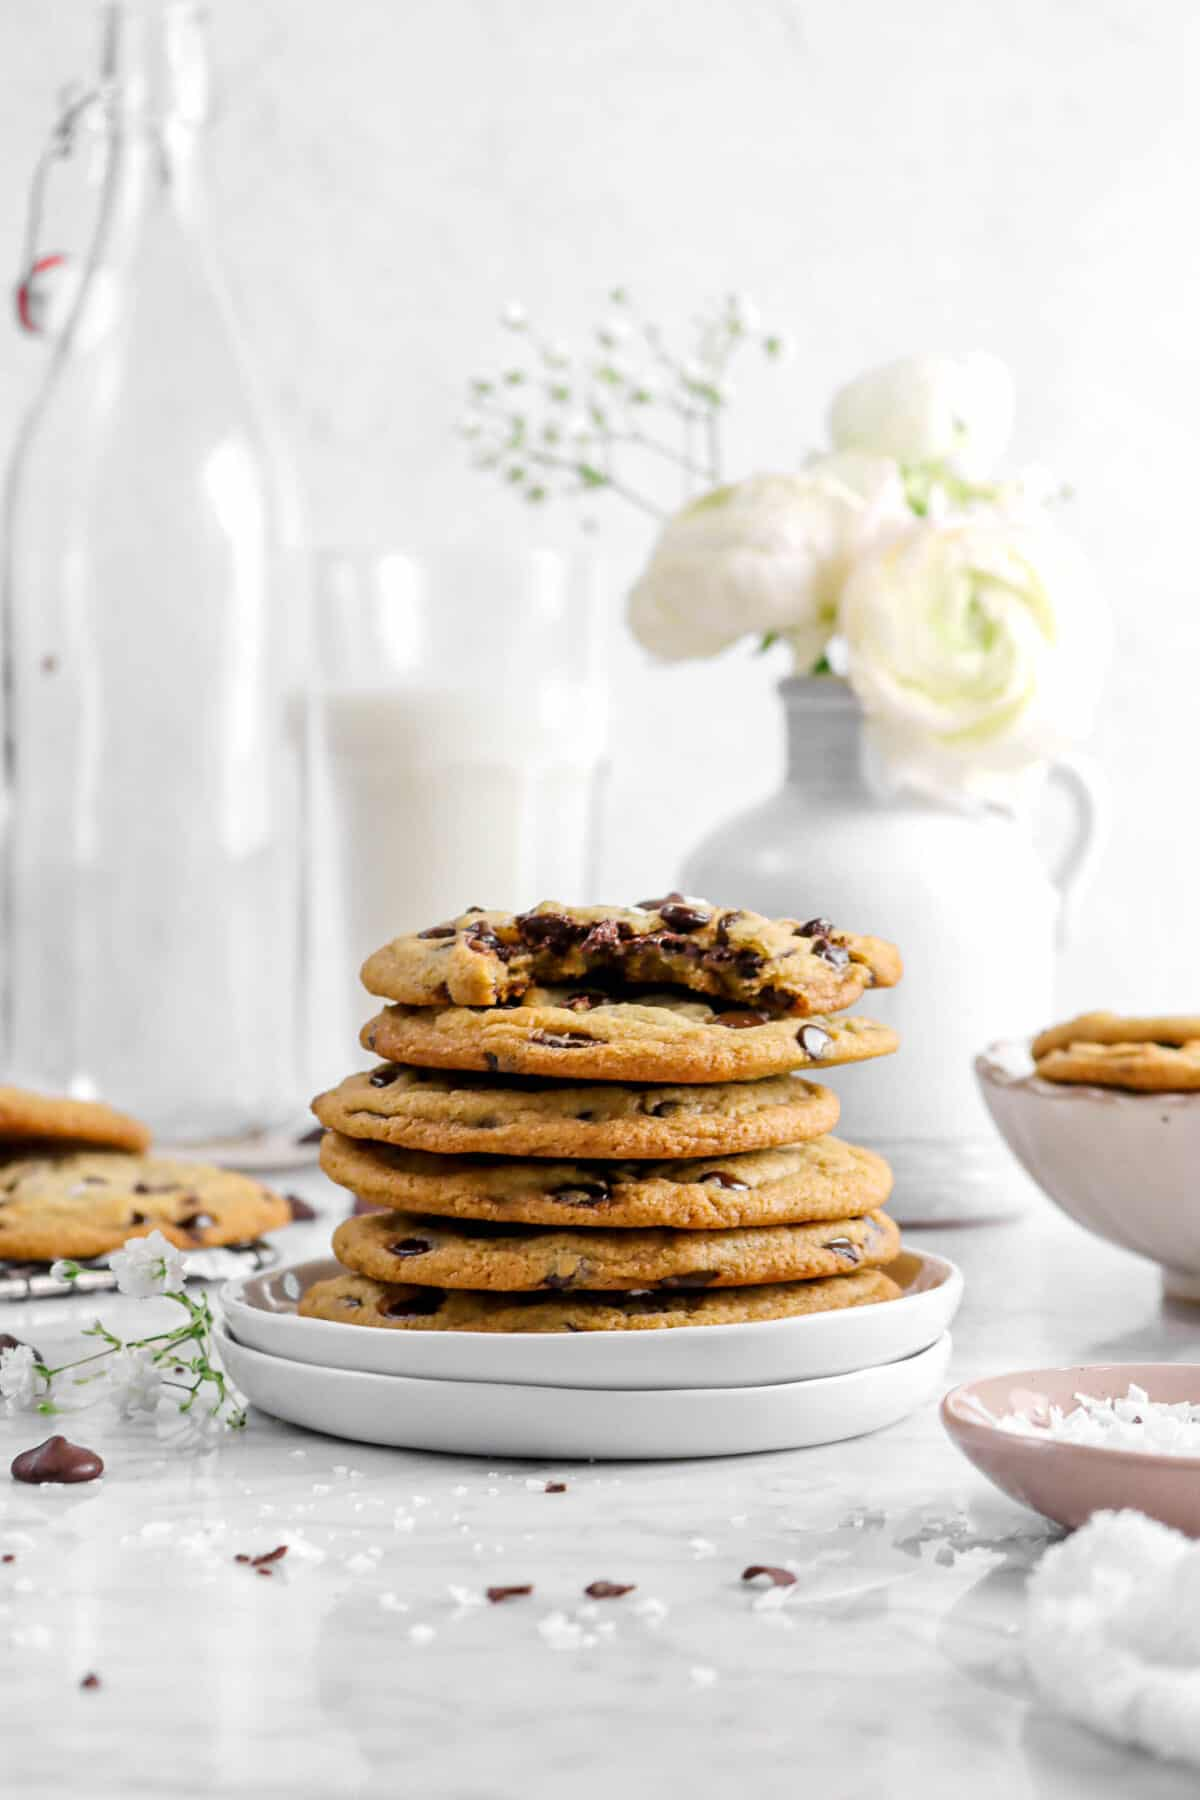 six stacked chocolate chip cookies with a bite taken out of one with a flowers and a glass of milk behind